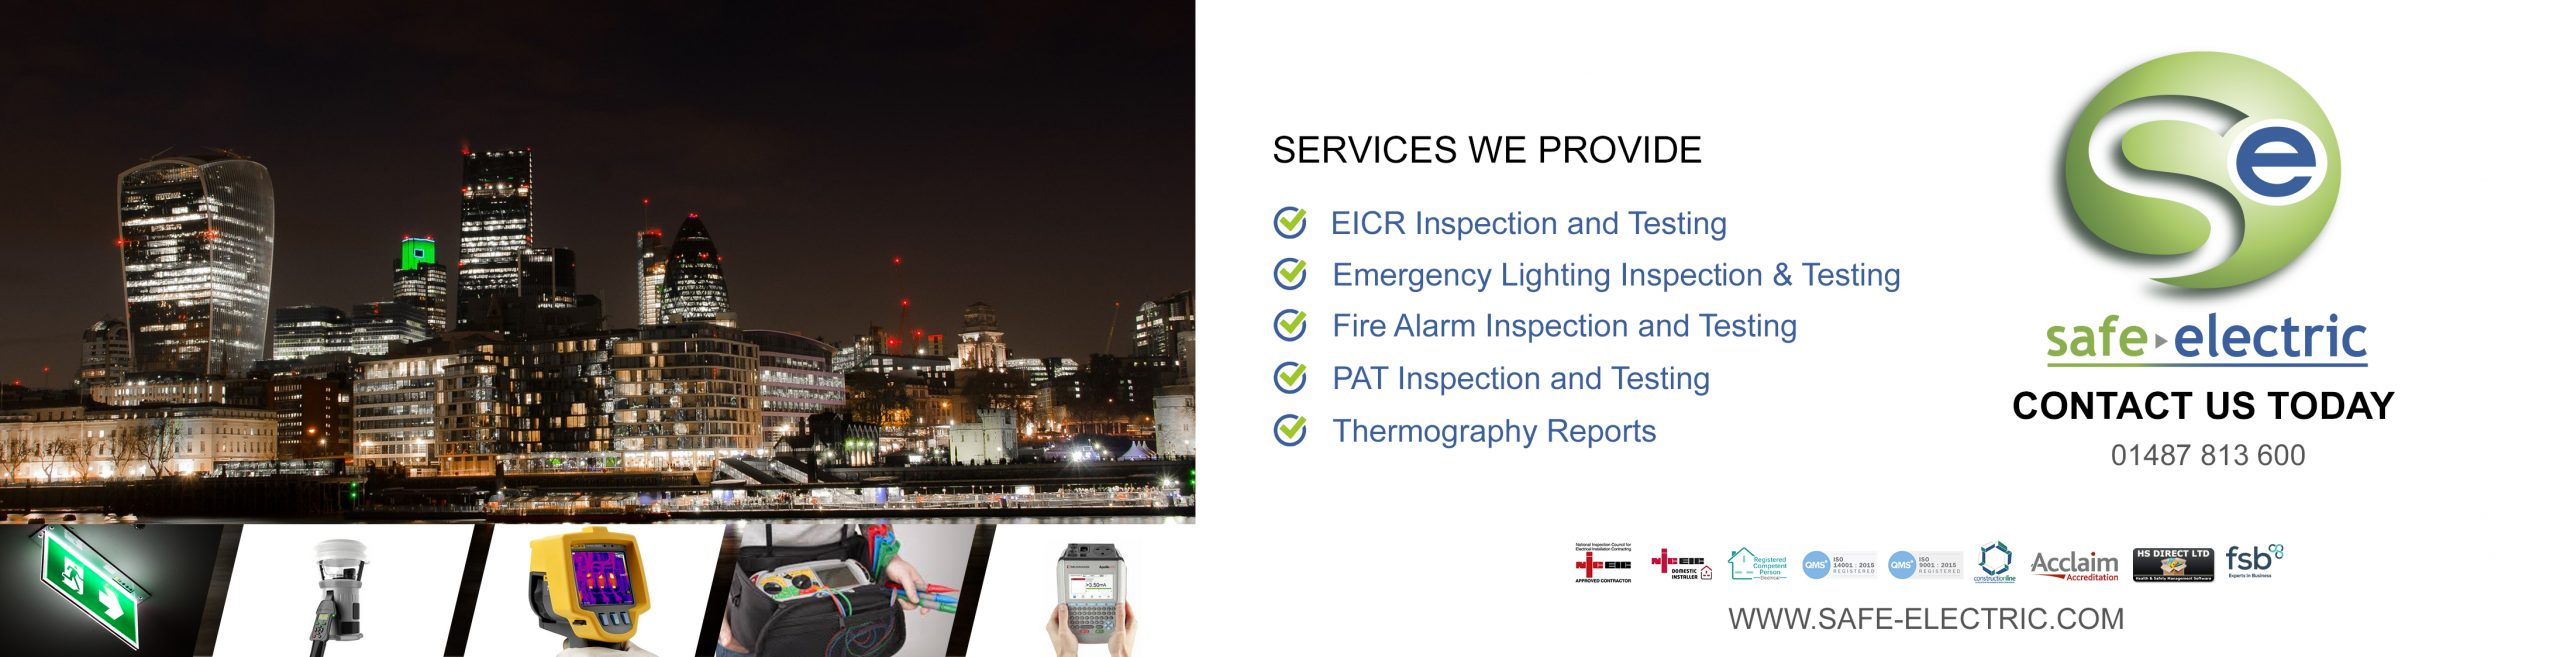 Safe-Electric Services